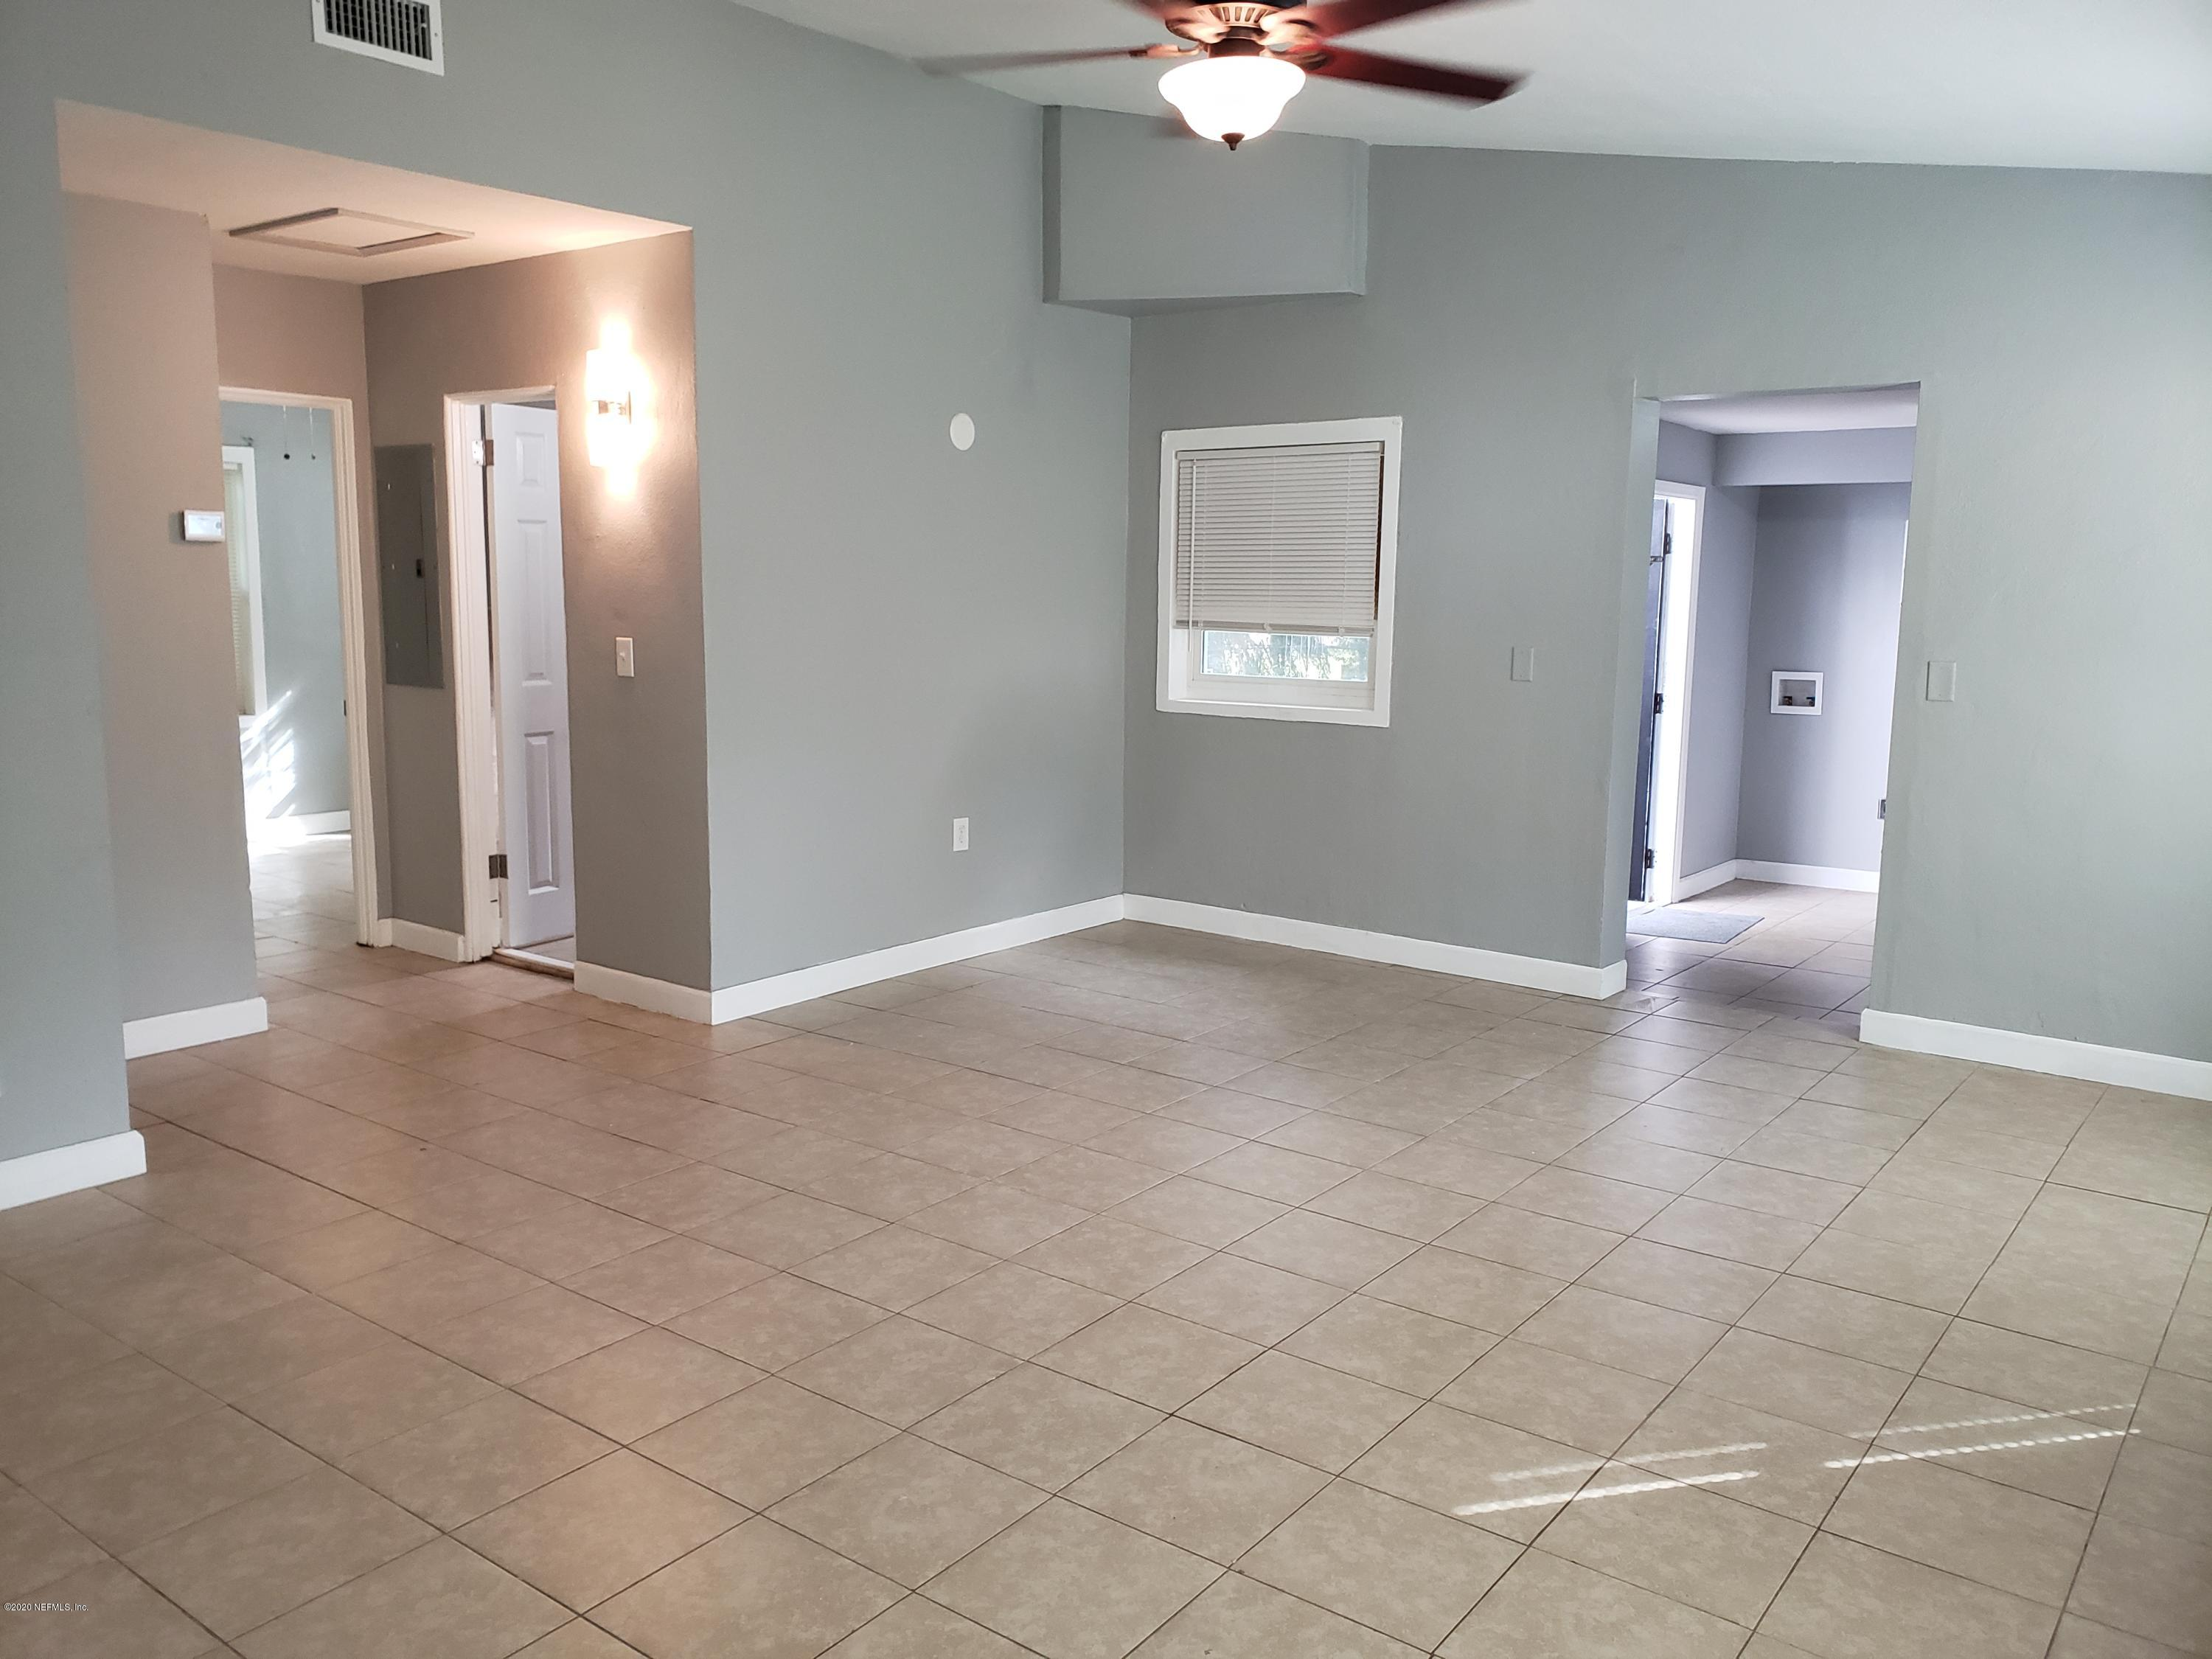 9806 BUNCOME, JACKSONVILLE, FLORIDA 32246, 2 Bedrooms Bedrooms, ,1 BathroomBathrooms,Residential,For sale,BUNCOME,1081698